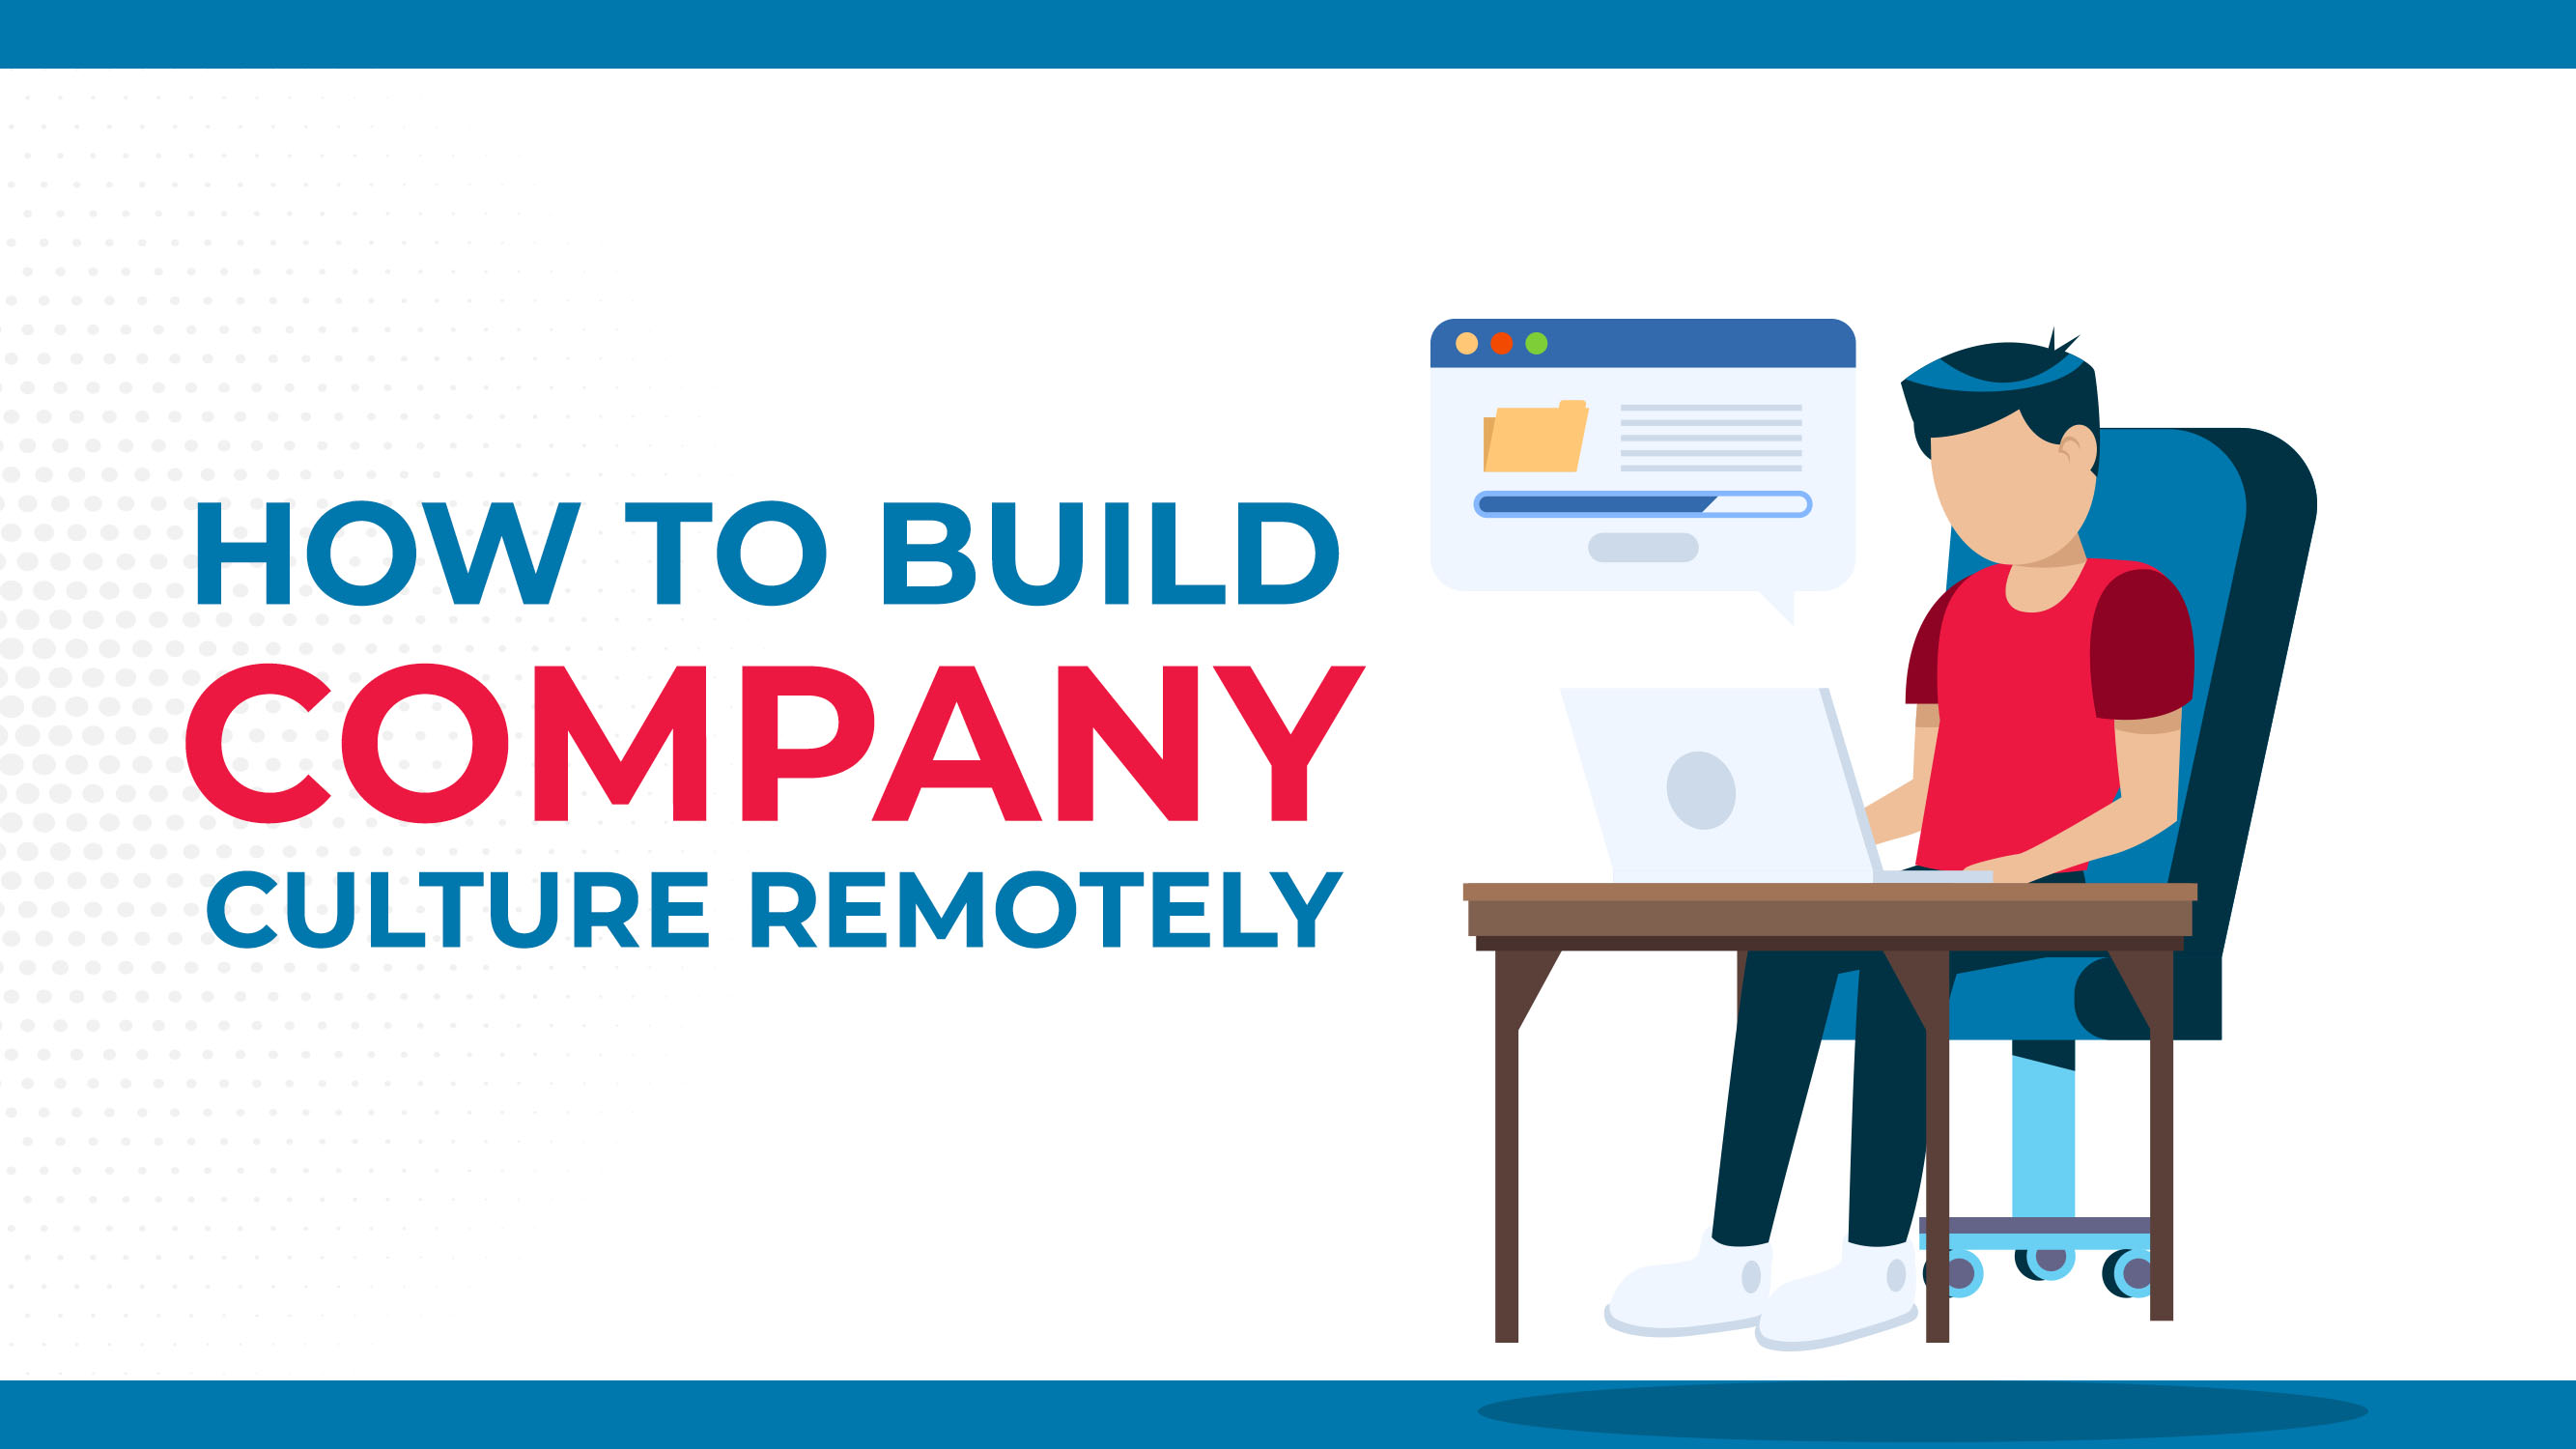 How To Build Company Culture Remotely